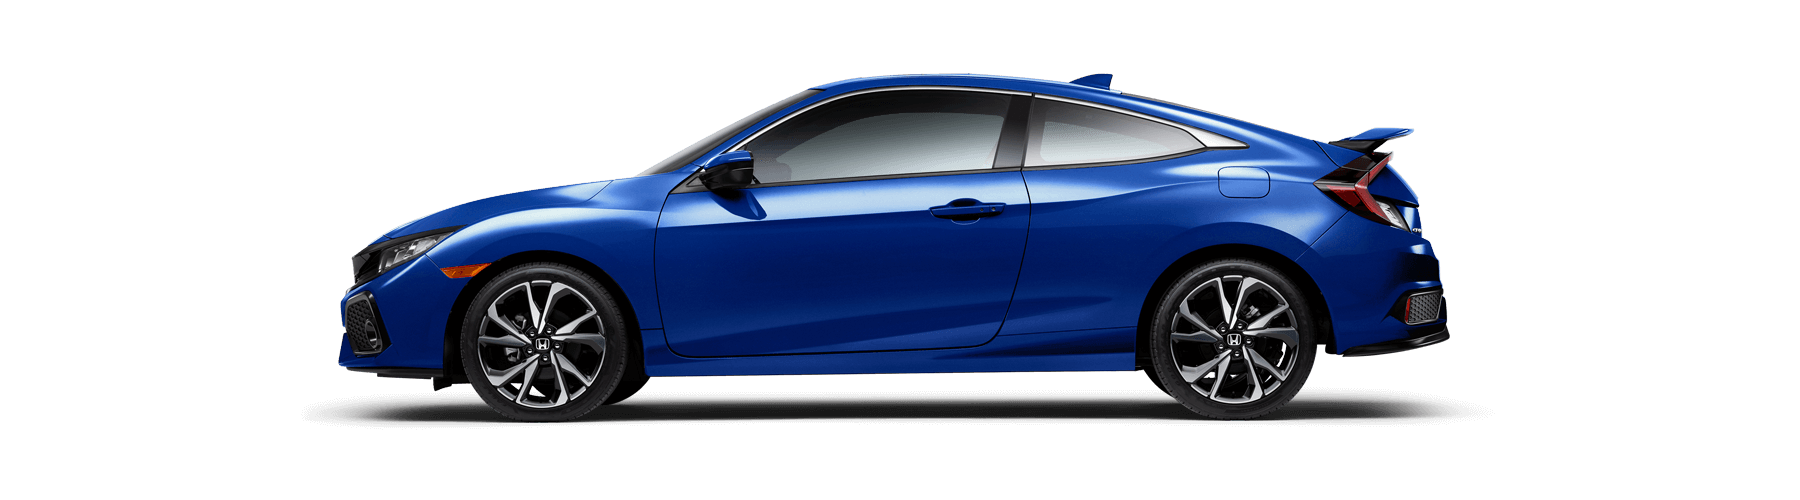 2019 Honda Civic Si Coupe Side Profile